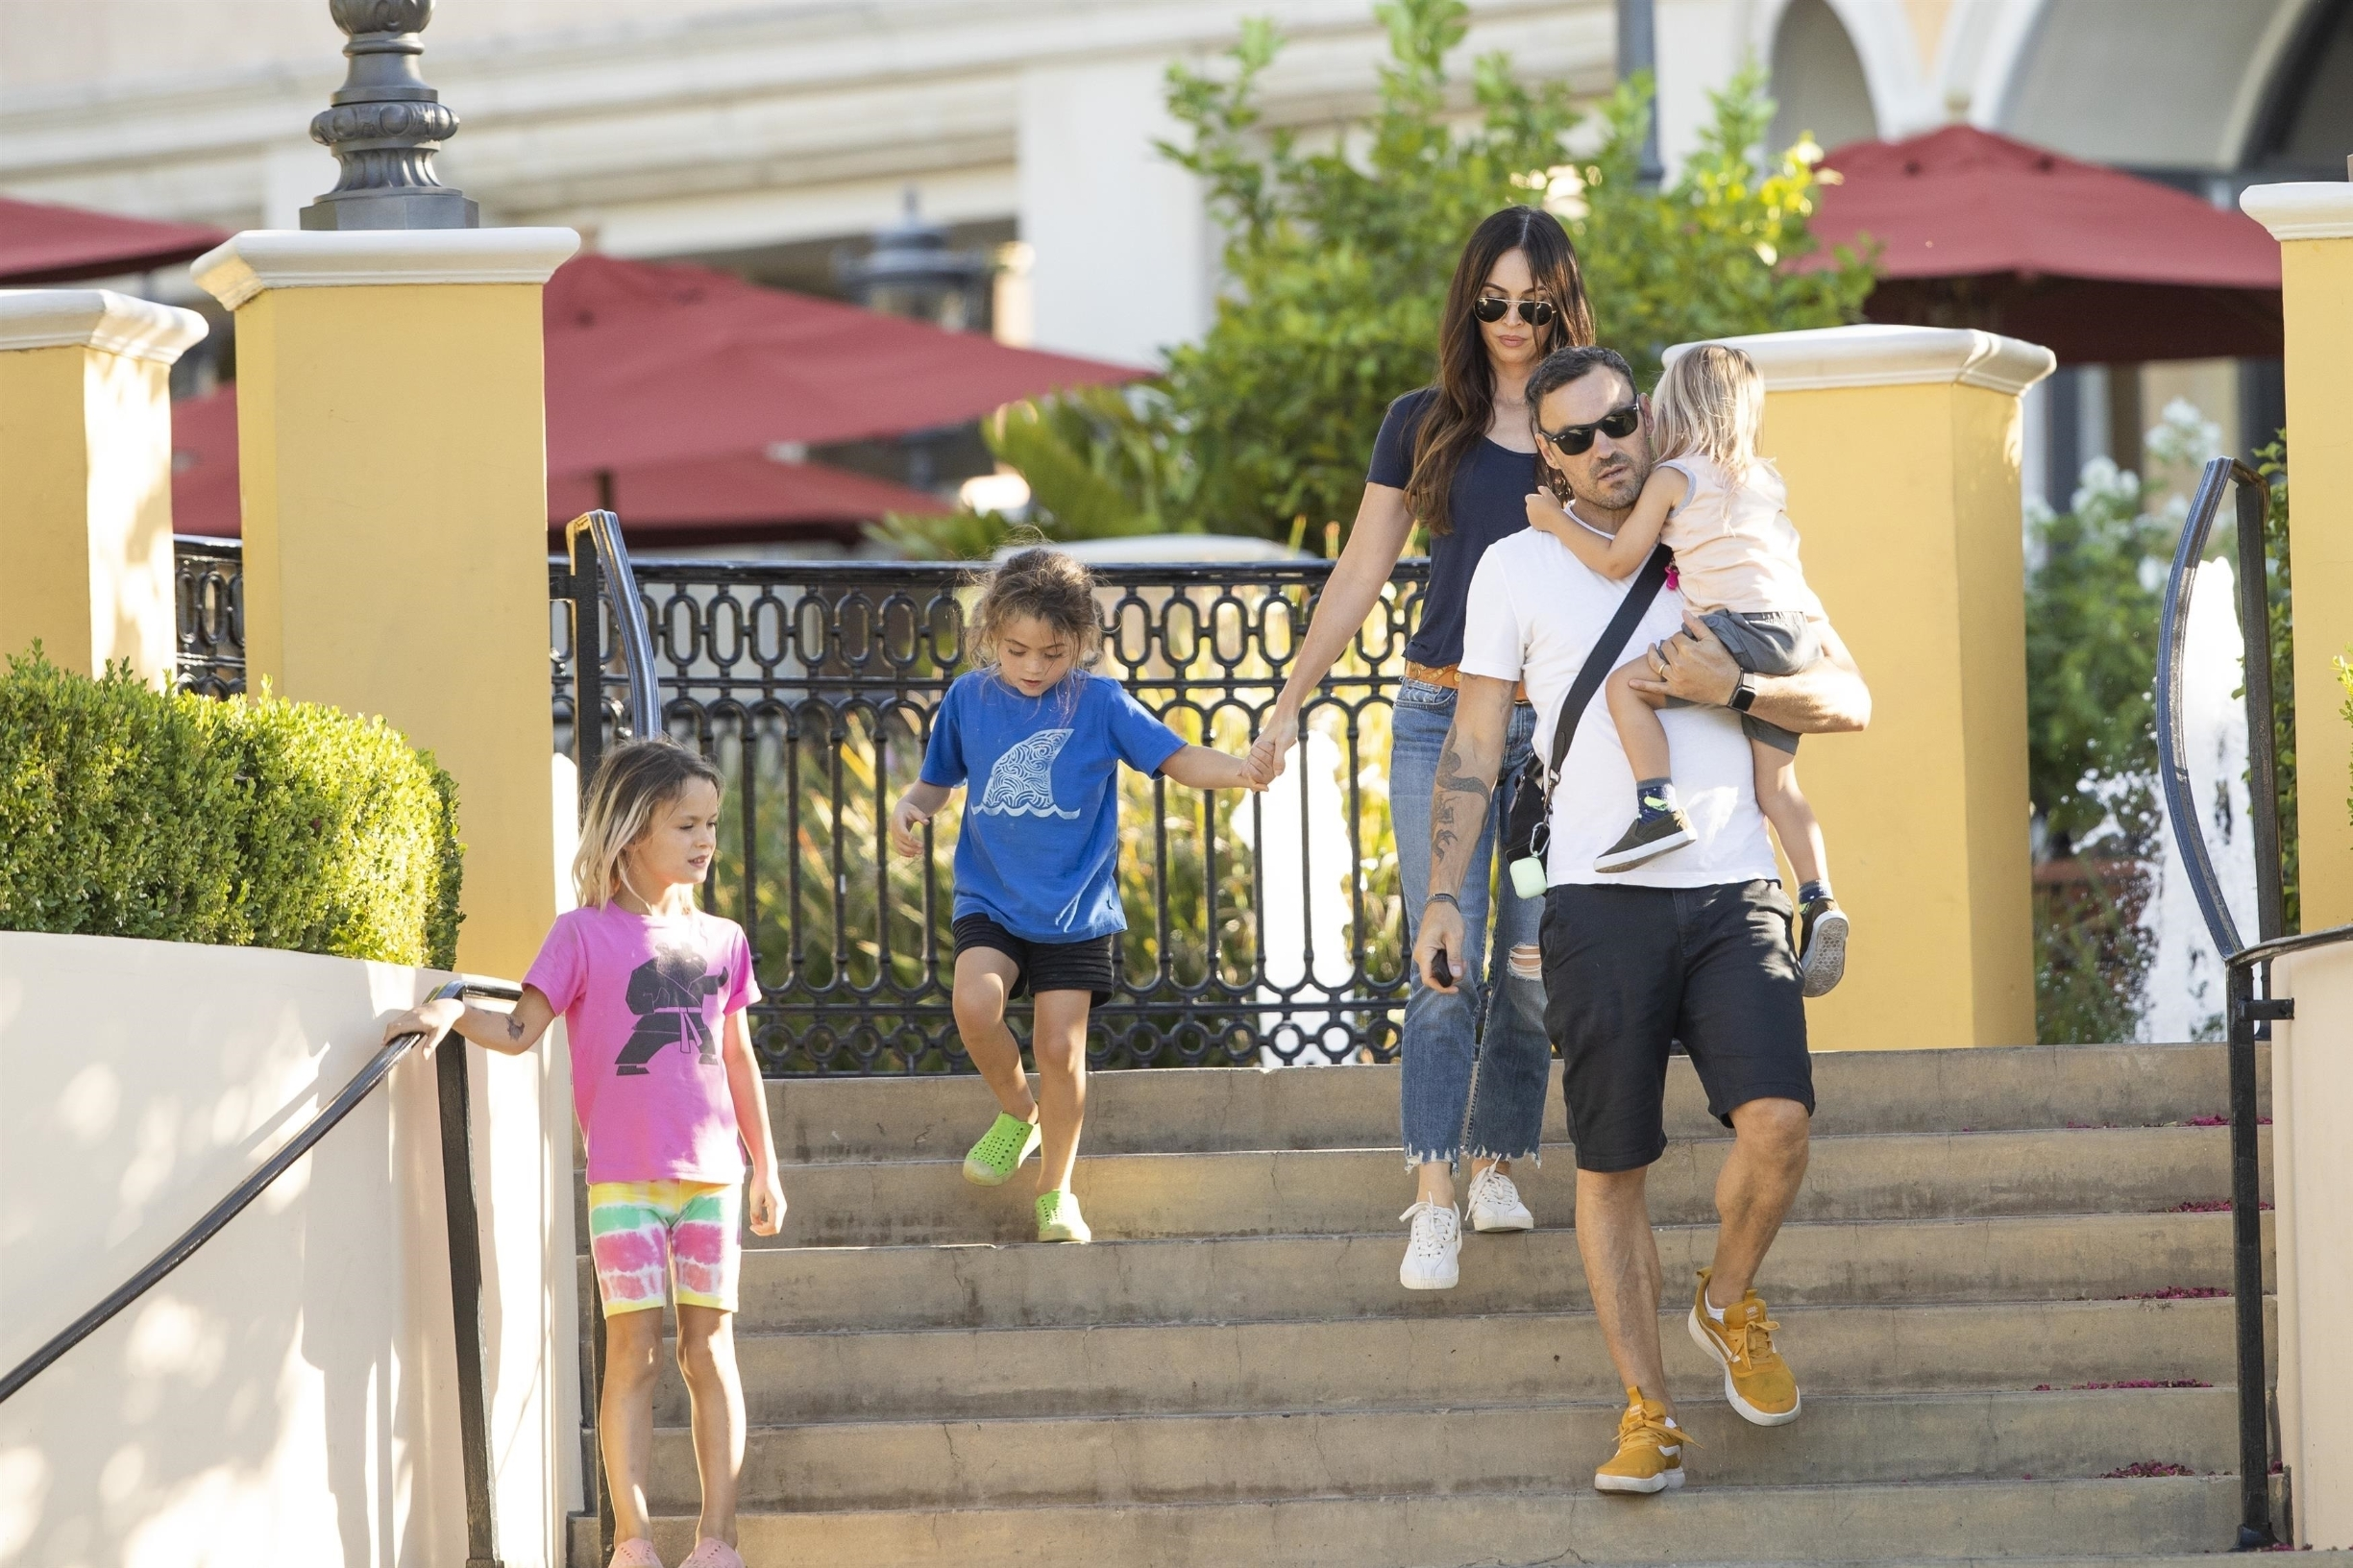 Calabasas, CA  - Megan Fox and Brian Austin Green took the kids for sushi at celeb hot spot Sugarfish in Calabasas. The kids made funny faces for the cameras on the way inside.  BACKGRID USA 7 SEPTEMBER 2019,Image: 469656532, License: Rights-managed, Restrictions: Non X, Model Release: no, Credit line: IXOLA / BACKGRID / Backgrid USA / Profimedia